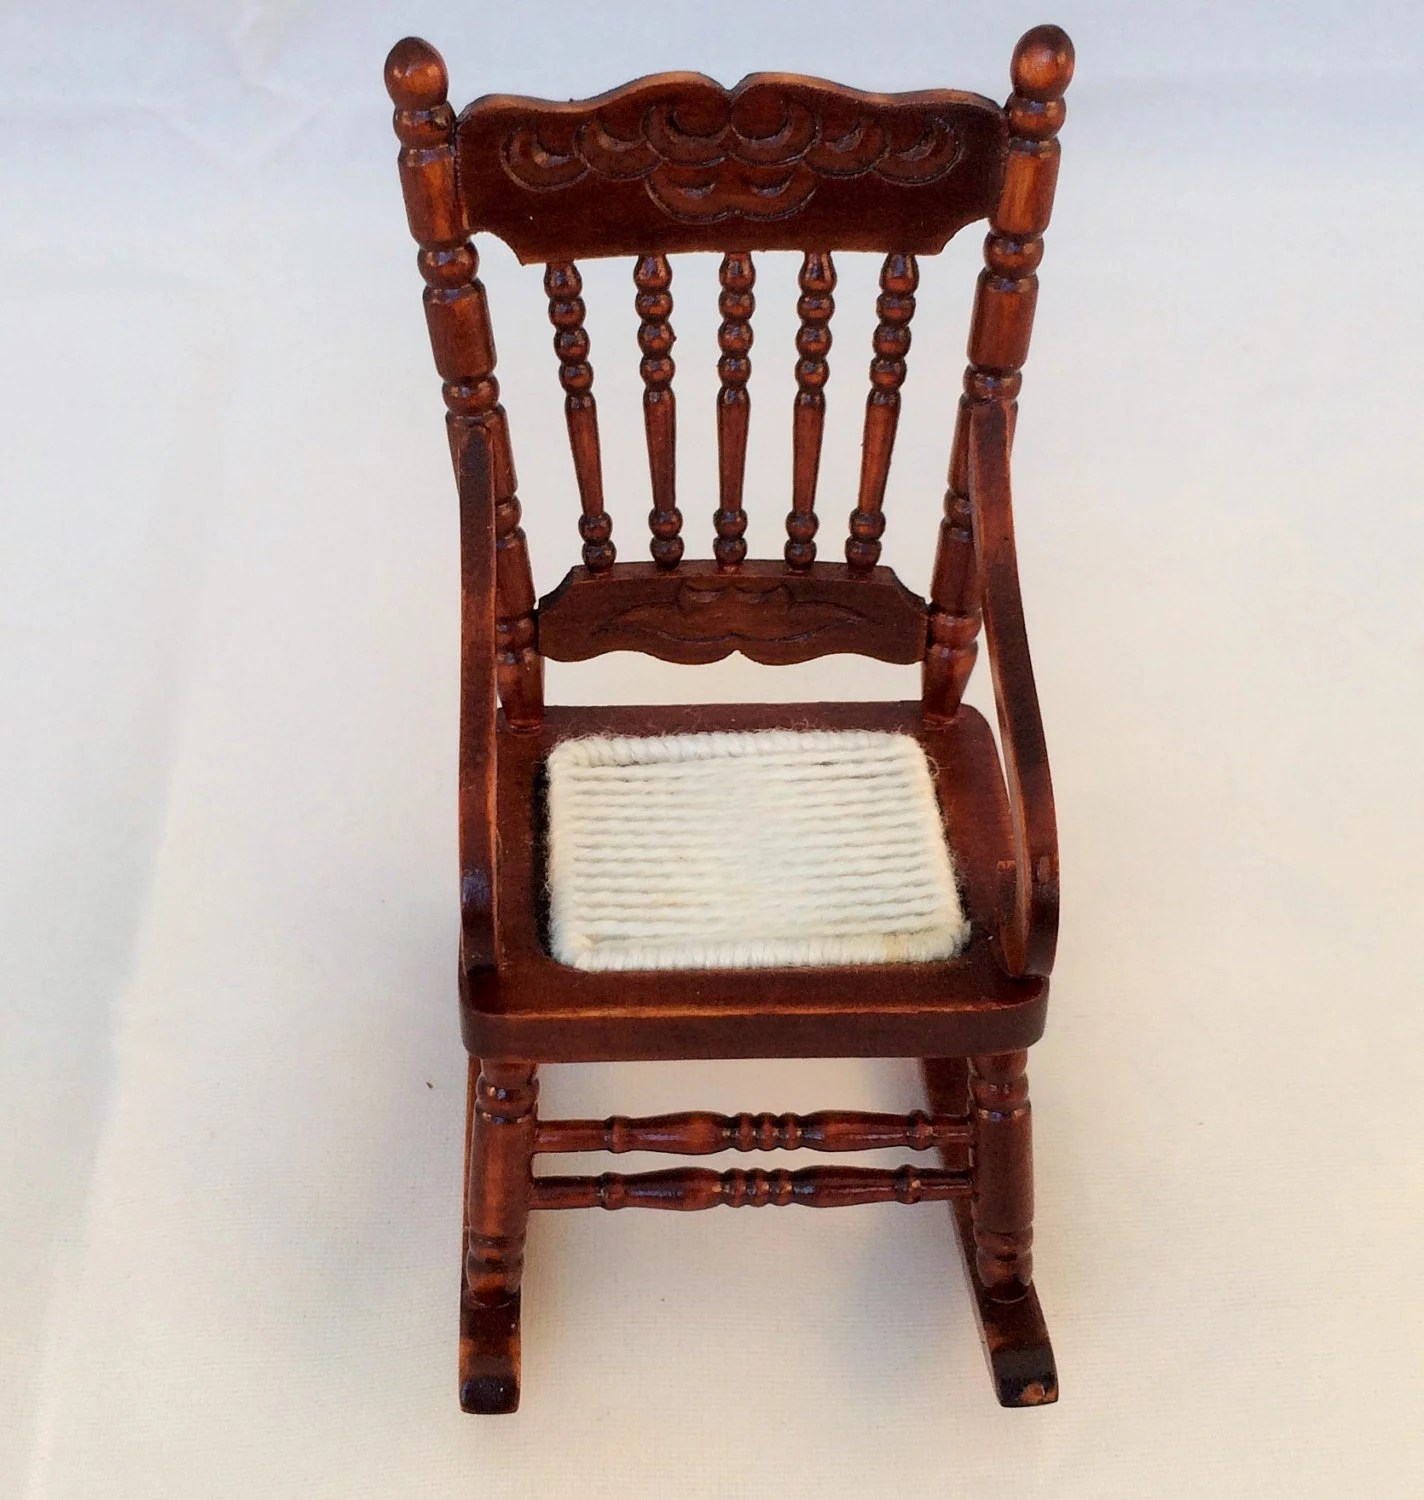 antique wooden rocking chairs adirondack chair for sale vintage miniature 1 12 scale hand